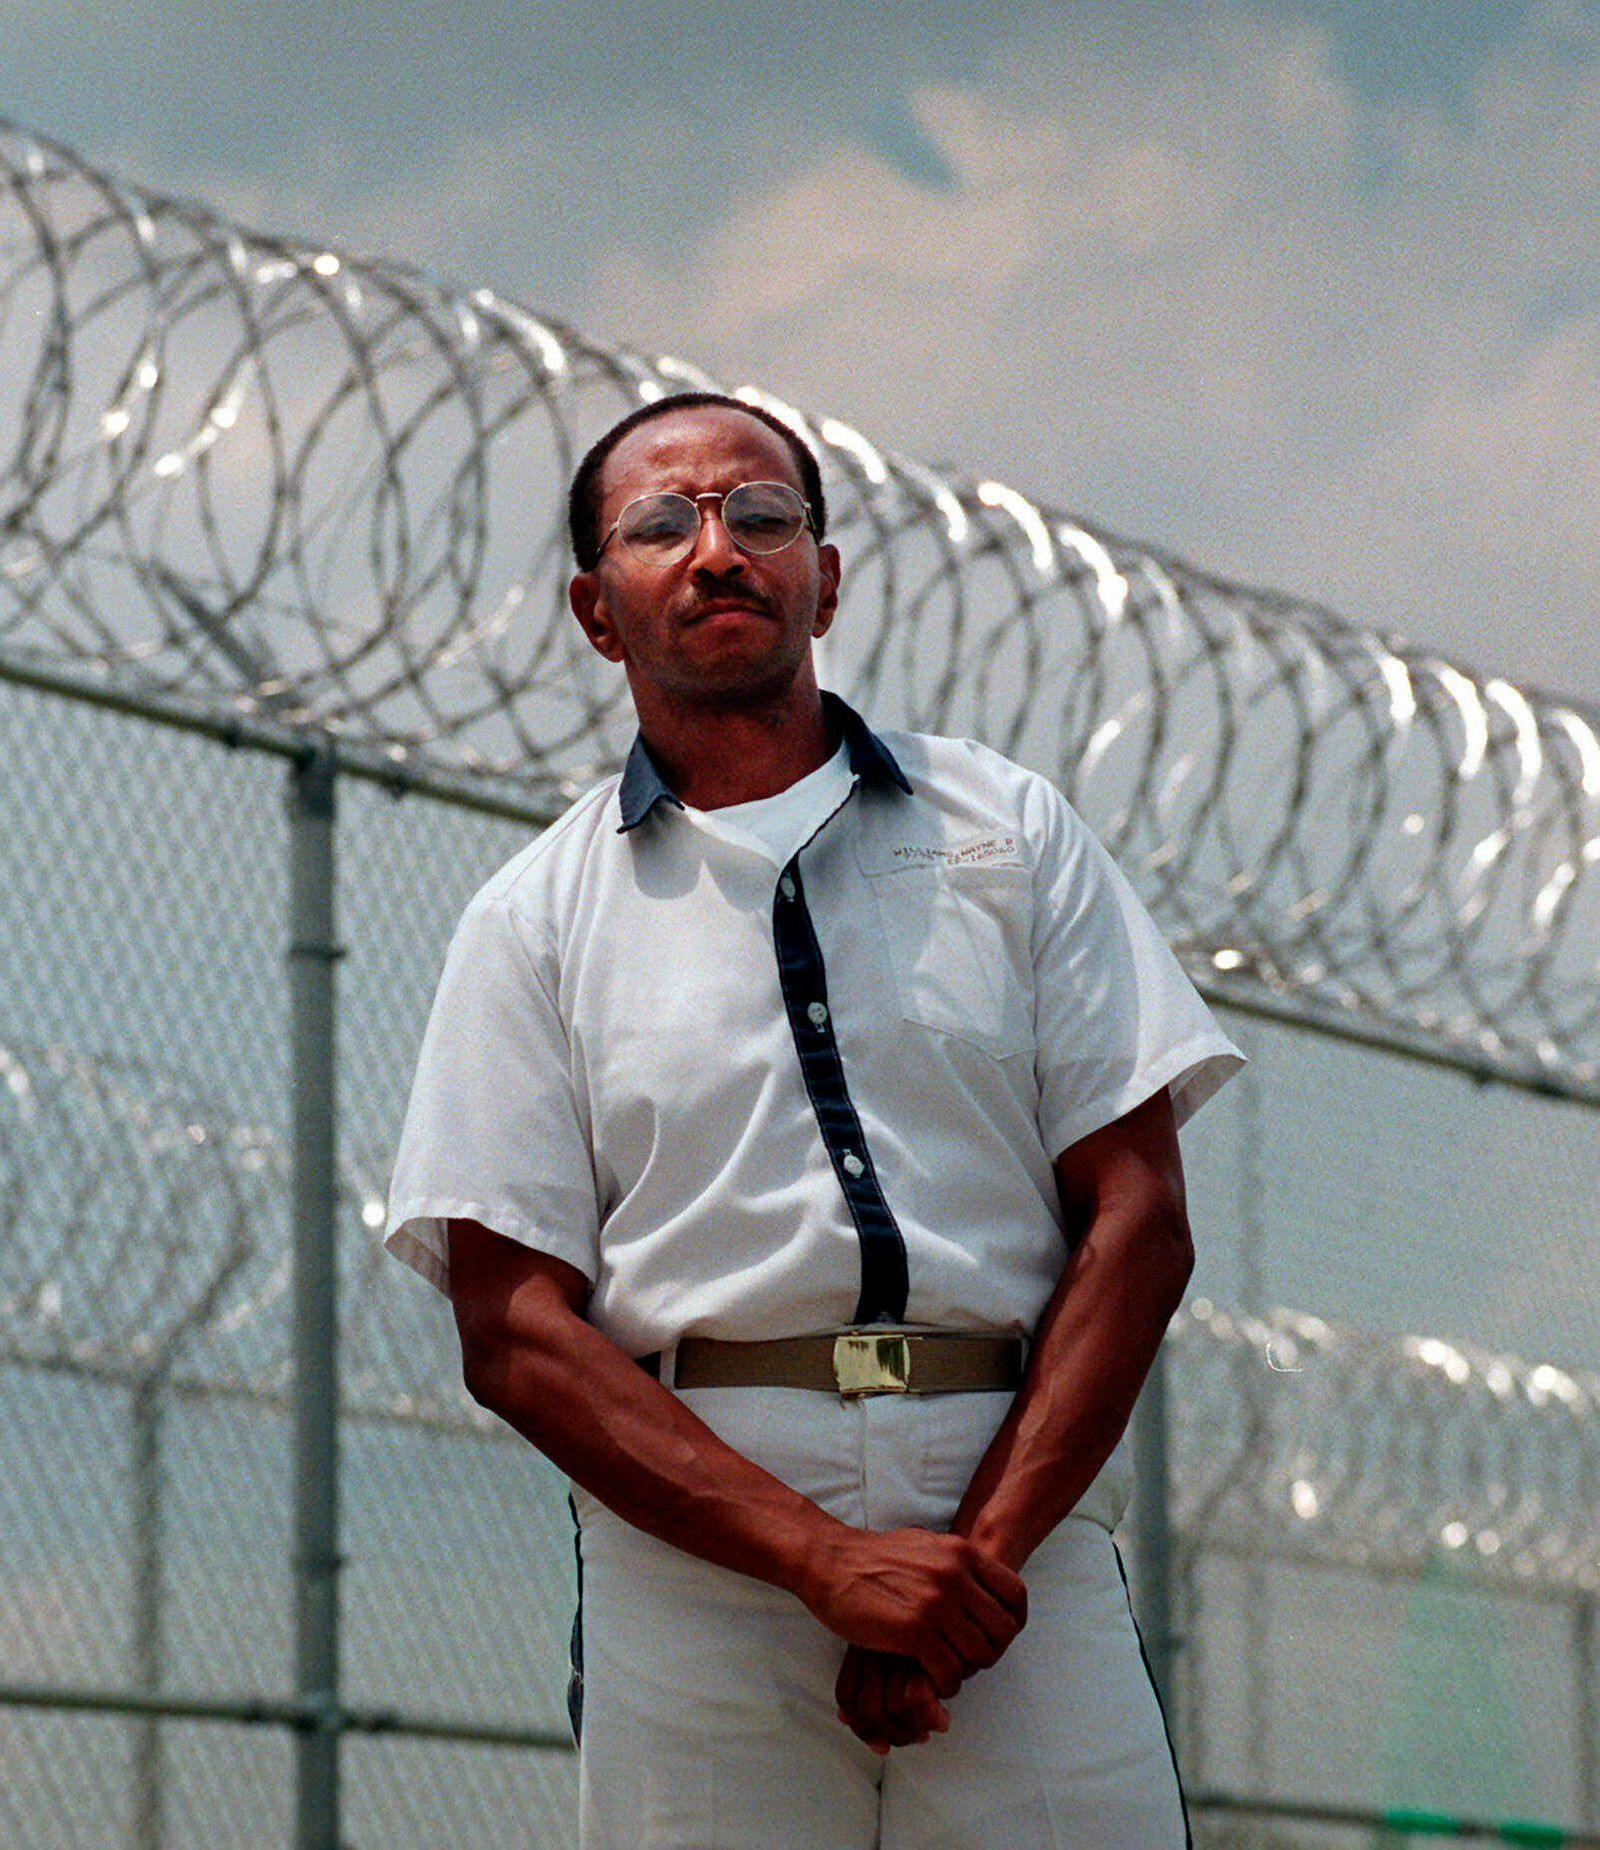 FILE - In this May 24, 1999 file photo, convicted killer Wayne Williams poses along the fence line at Valdosta Sate Prison, Valdosta, Ga. (AP Photo/John Bazemore, File)